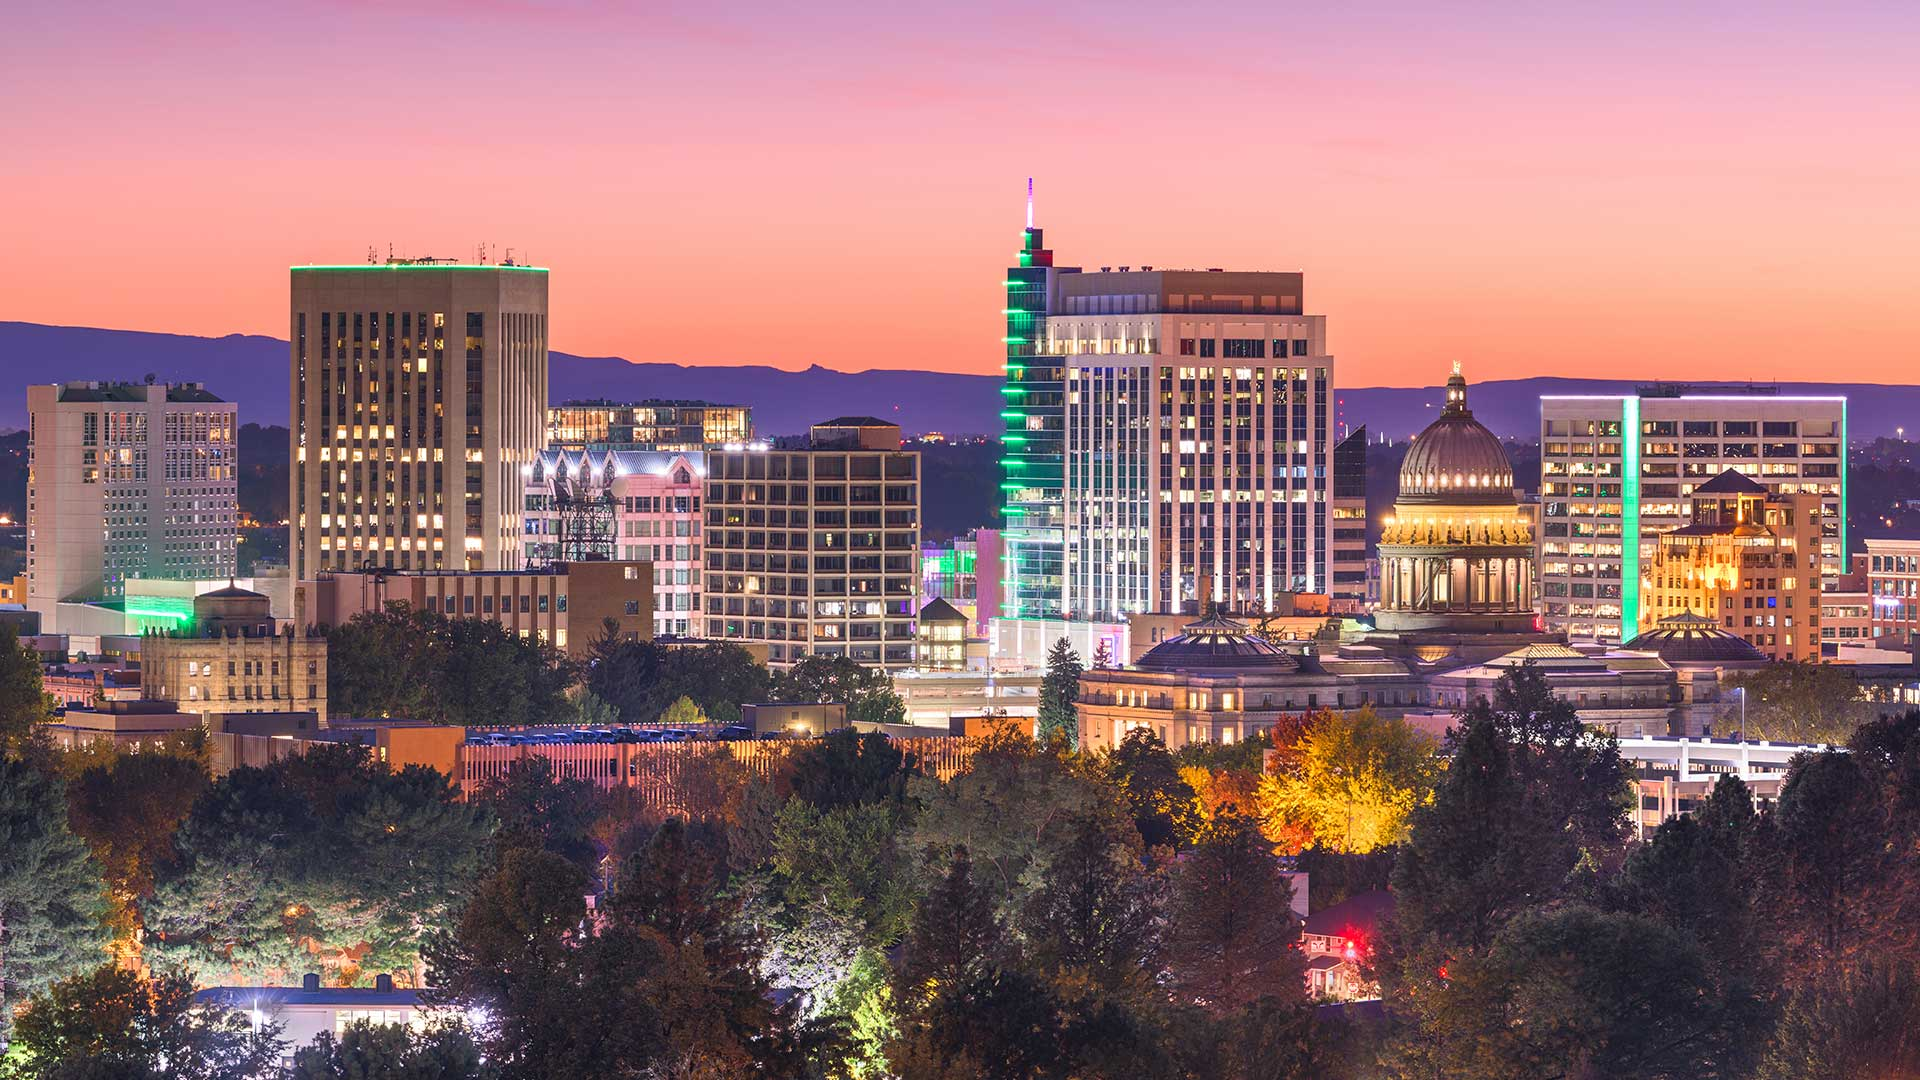 Panorama to illustrate dating in boise